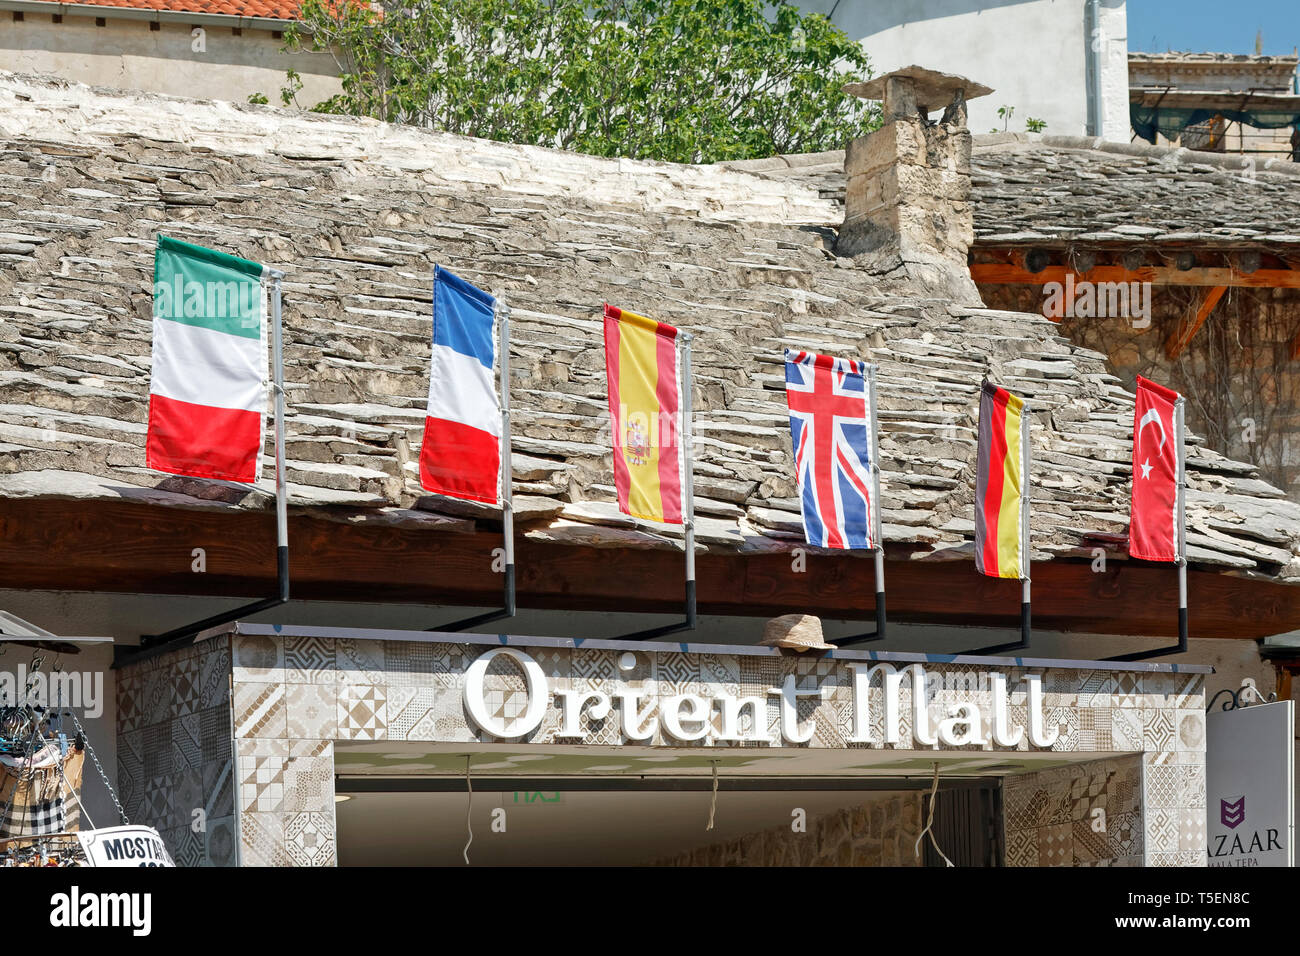 Orient Mall entrance, colorful country flags, old stone building, shops, Mostar; Bosnia Herzegovina; Europe; summer, horizontal - Stock Image